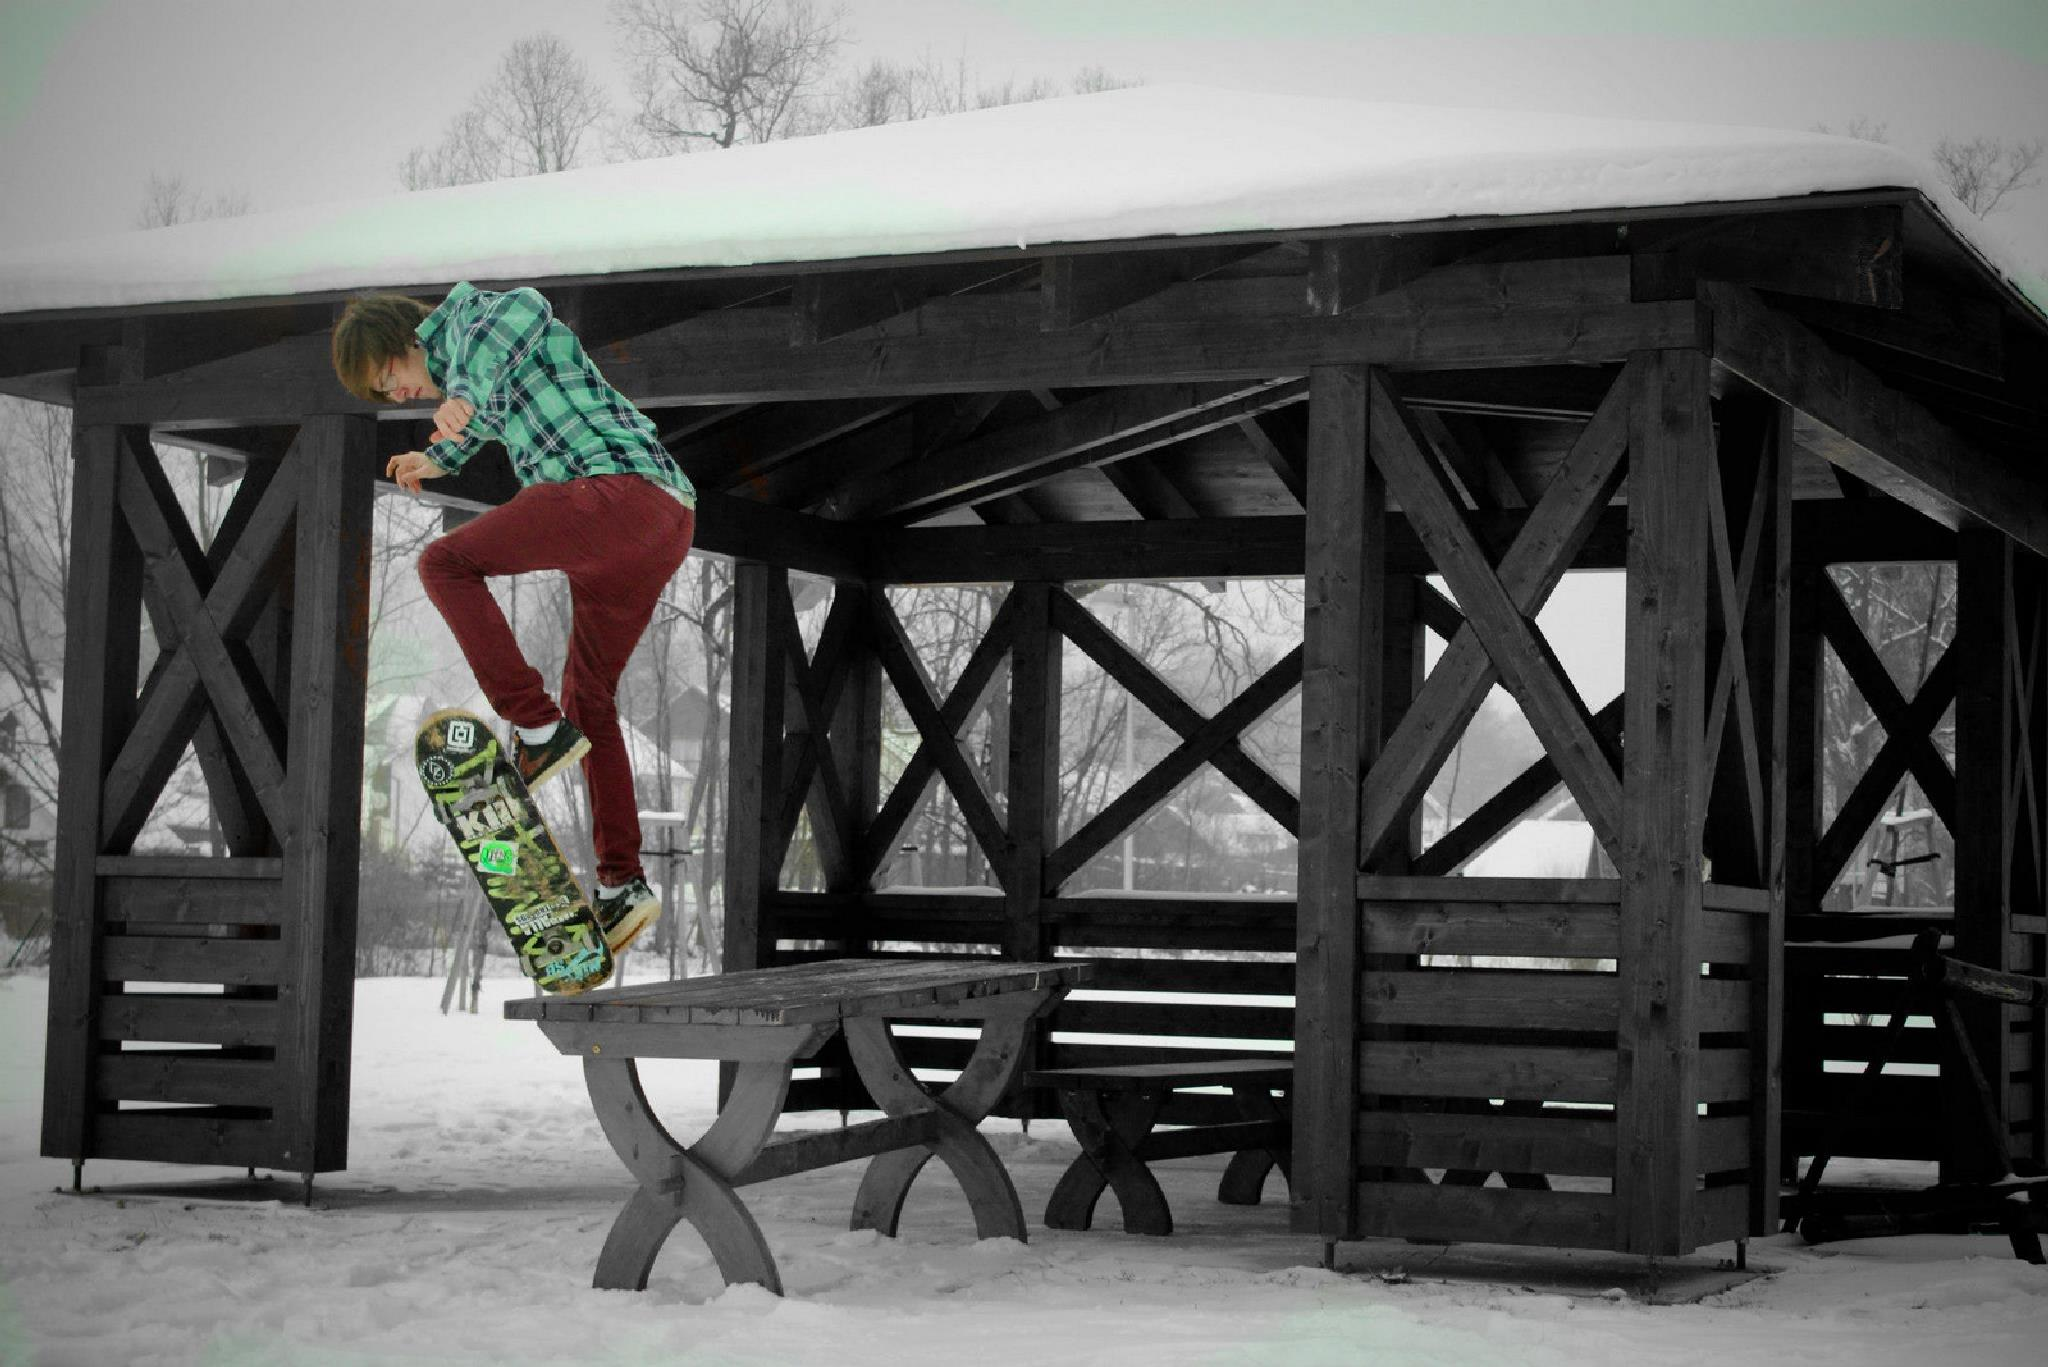 Skate and Snow by J Art of Photo